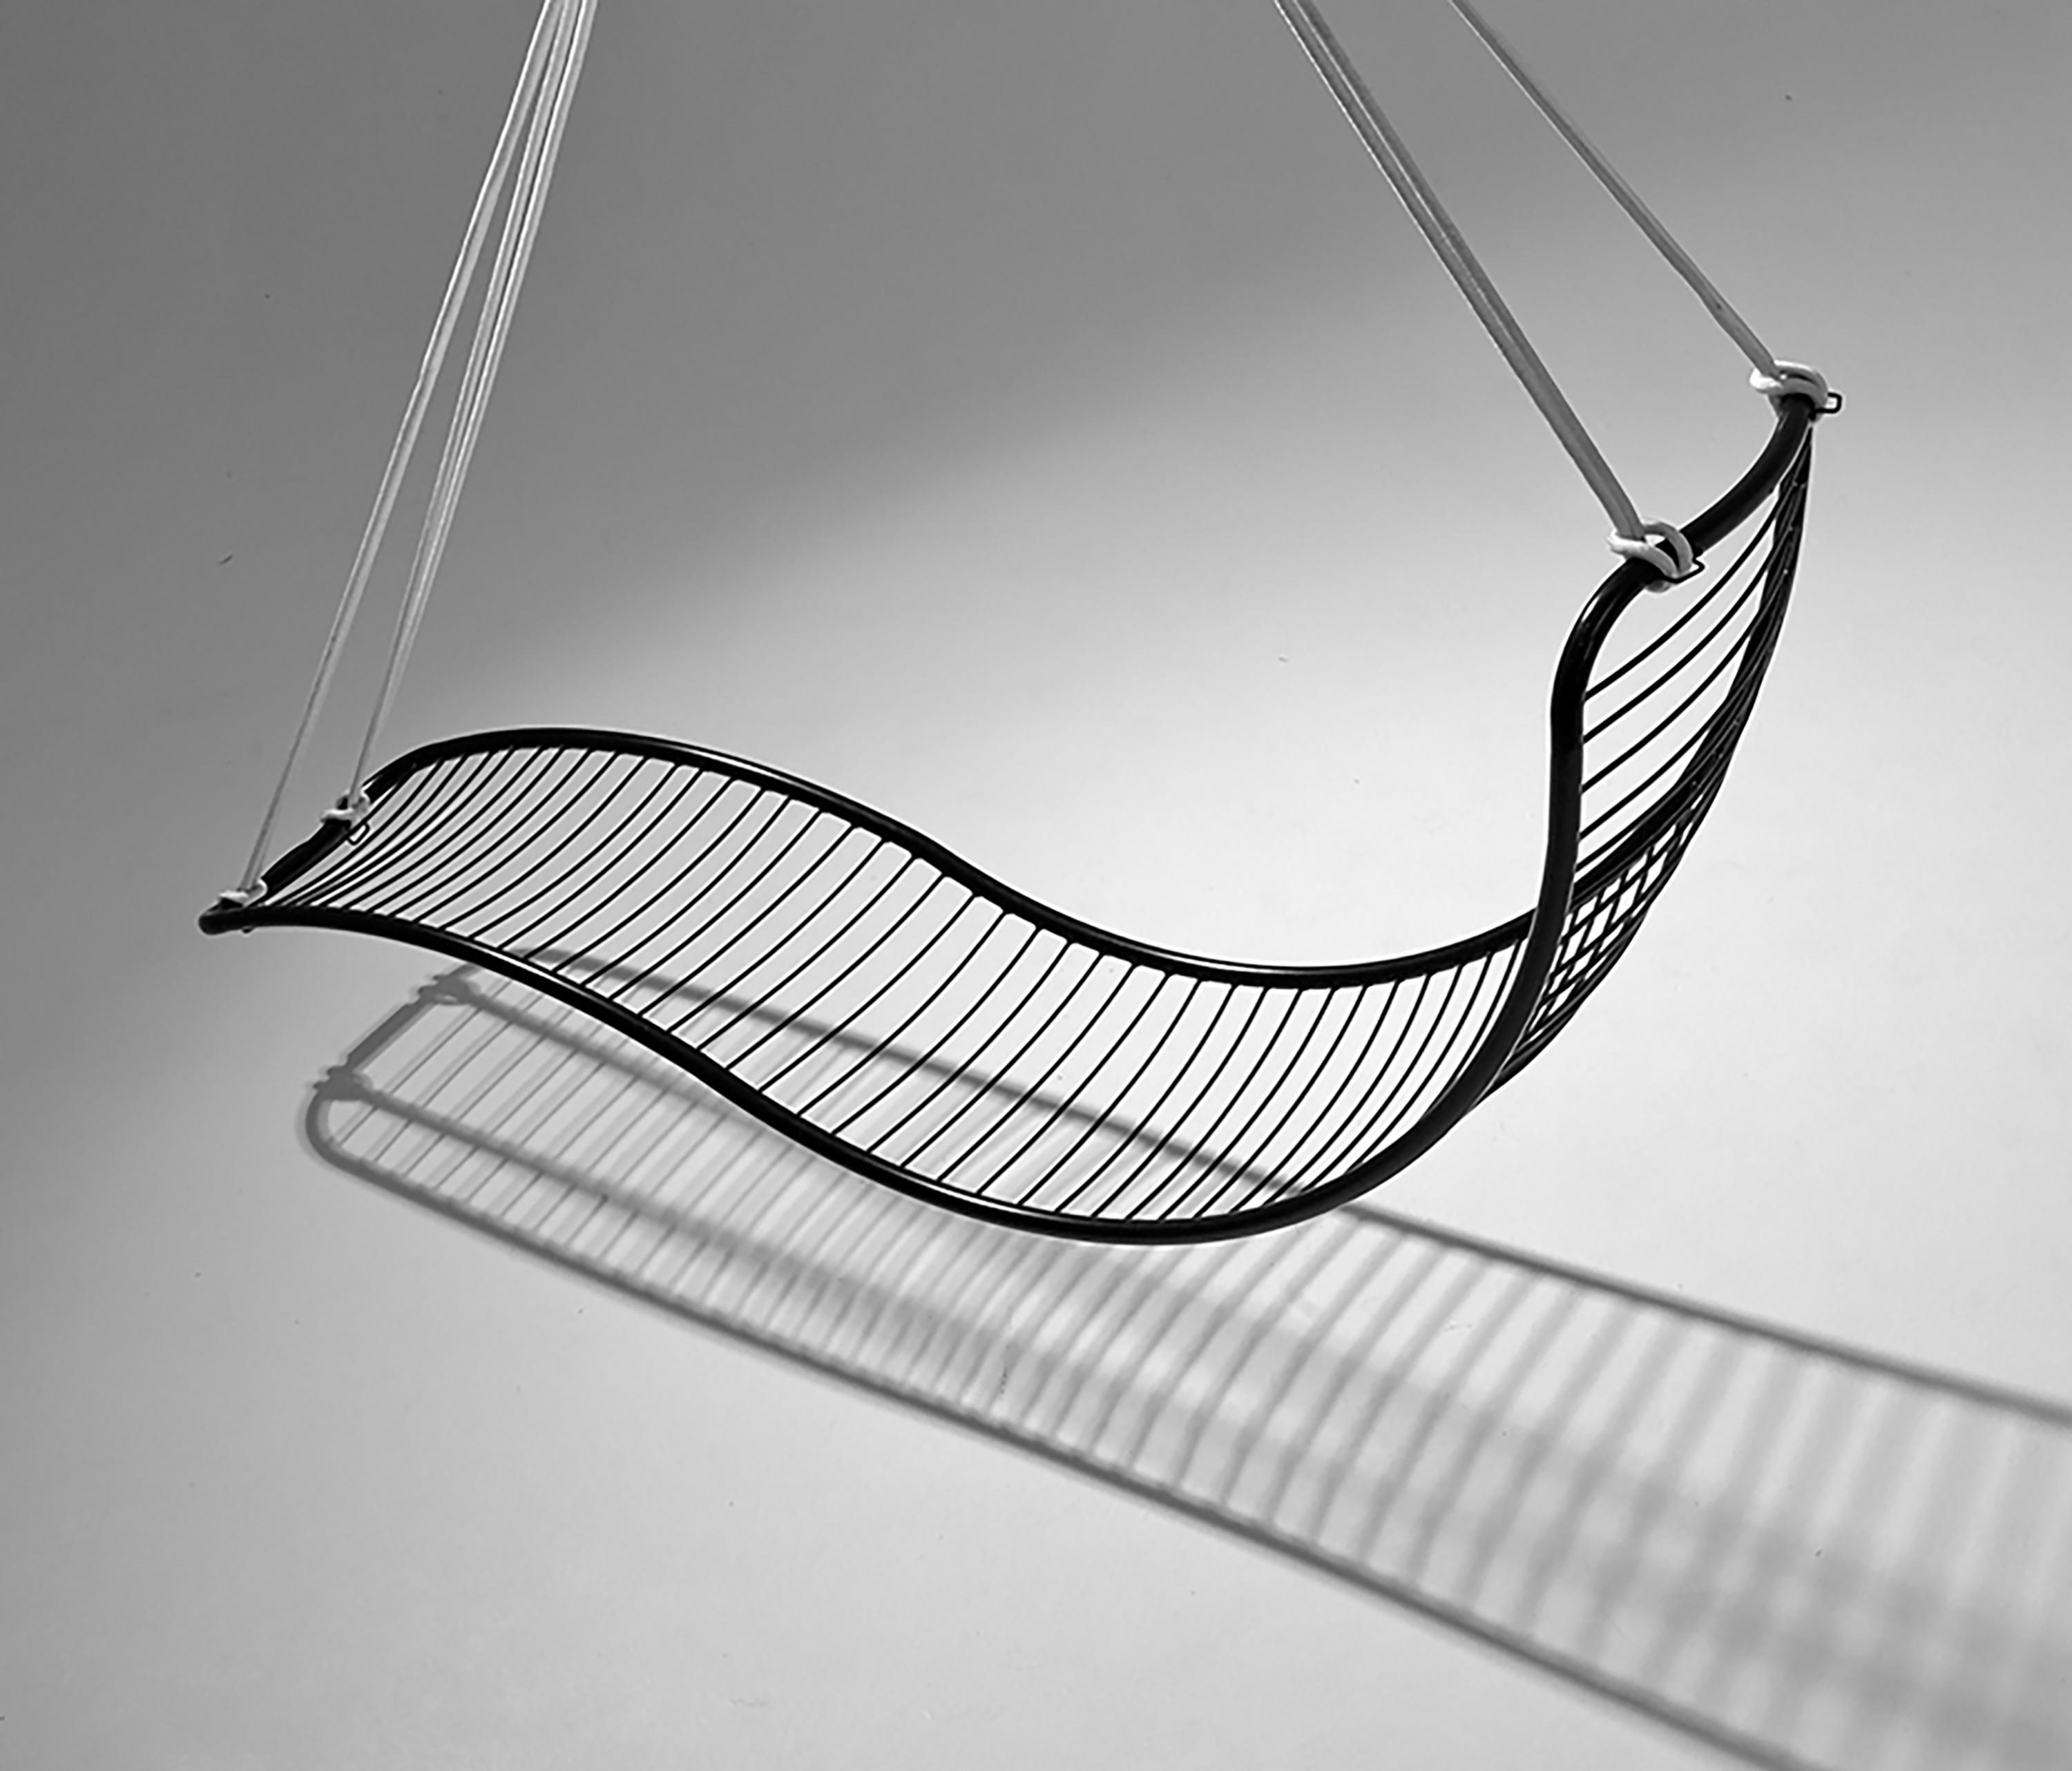 ... Pod hanging swing chair by Studio Stirling | Swings ...  sc 1 st  Architonic & POD HANGING SWING CHAIR - Swings from Studio Stirling | Architonic